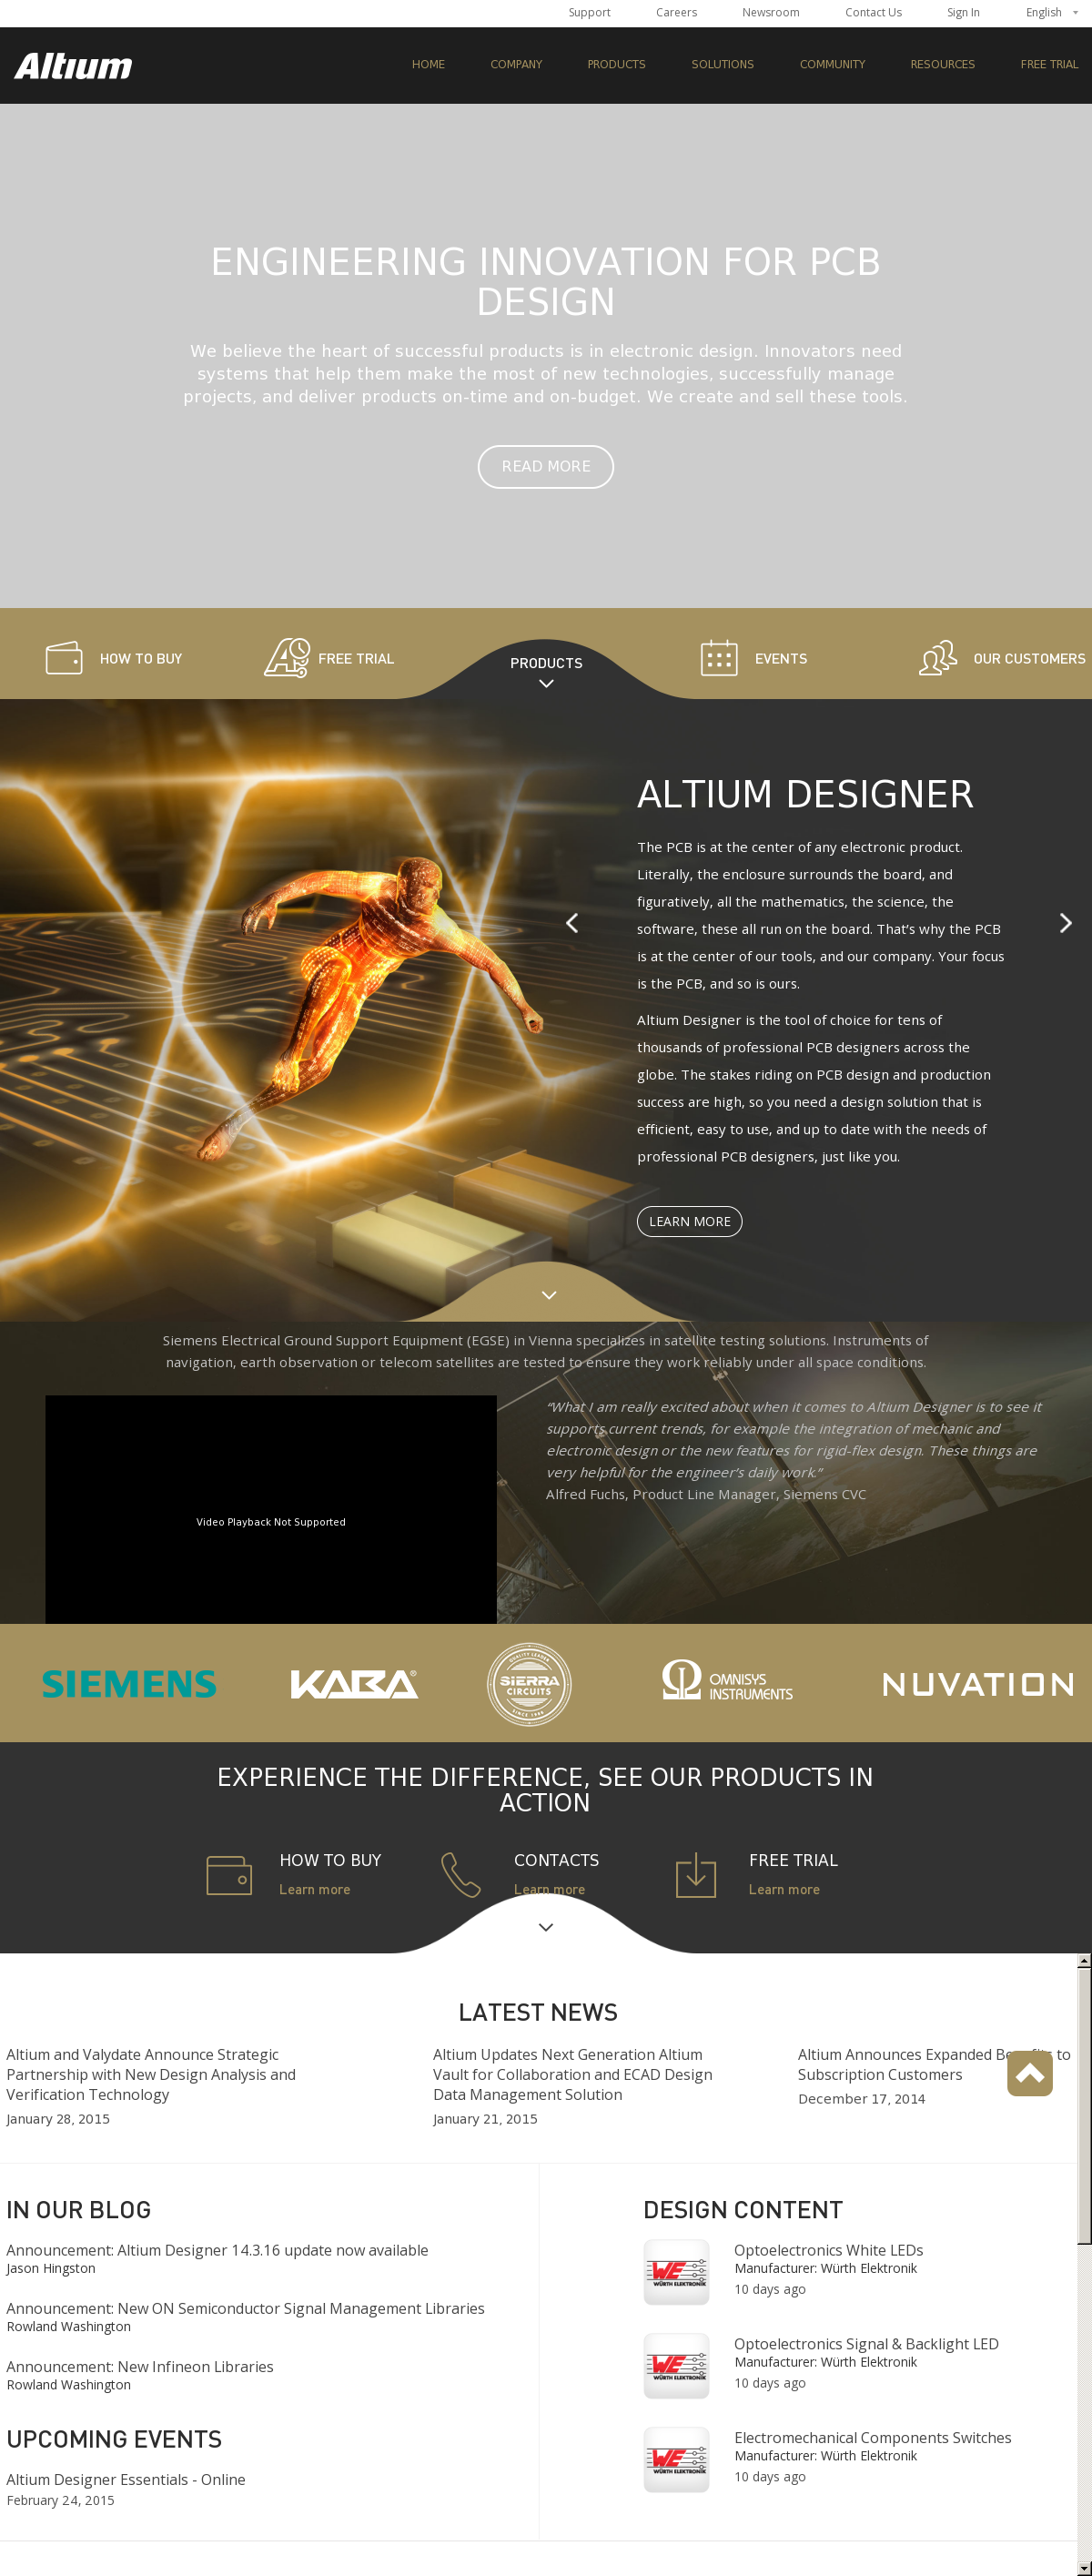 Owler Reports - Press Release: Altium : Altium Vault 3 0